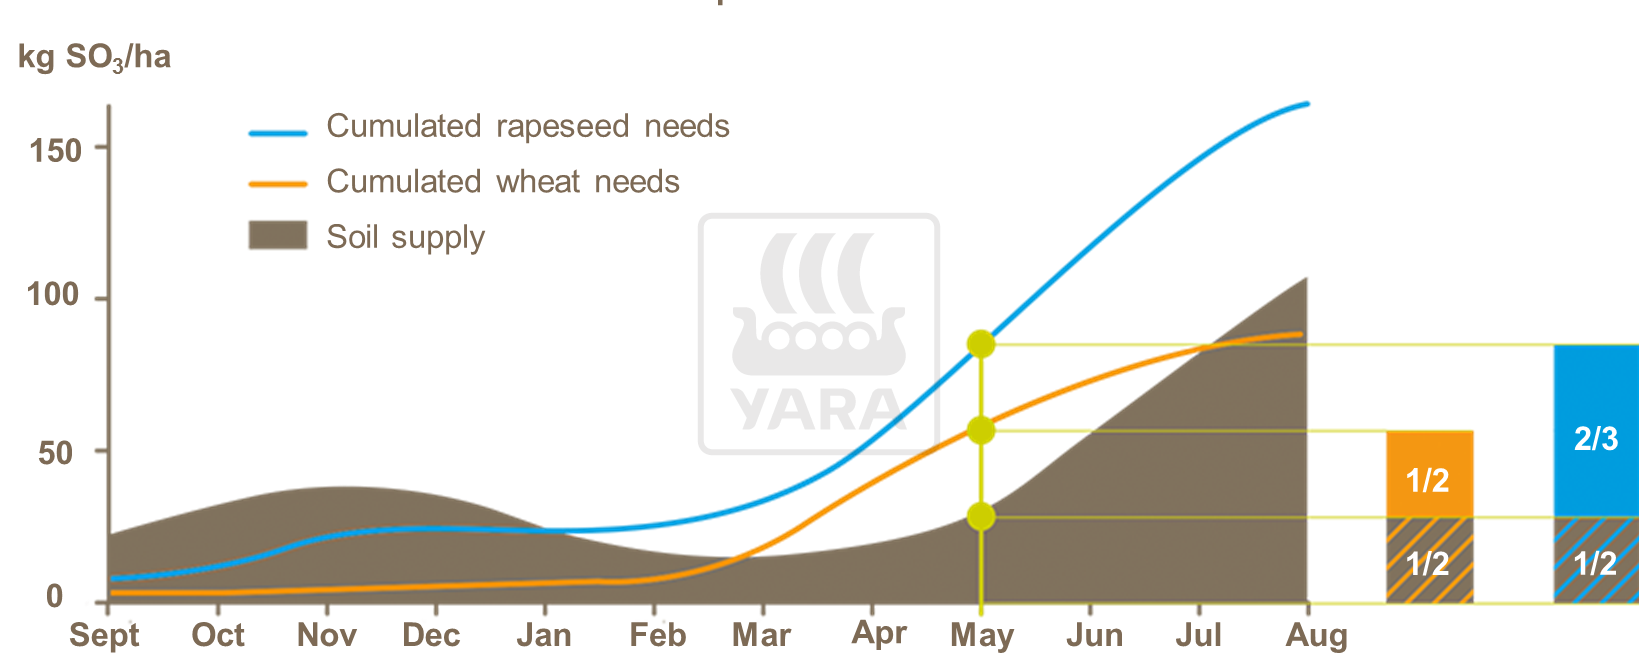 Sulphur requirements for oilseed rape and wheat